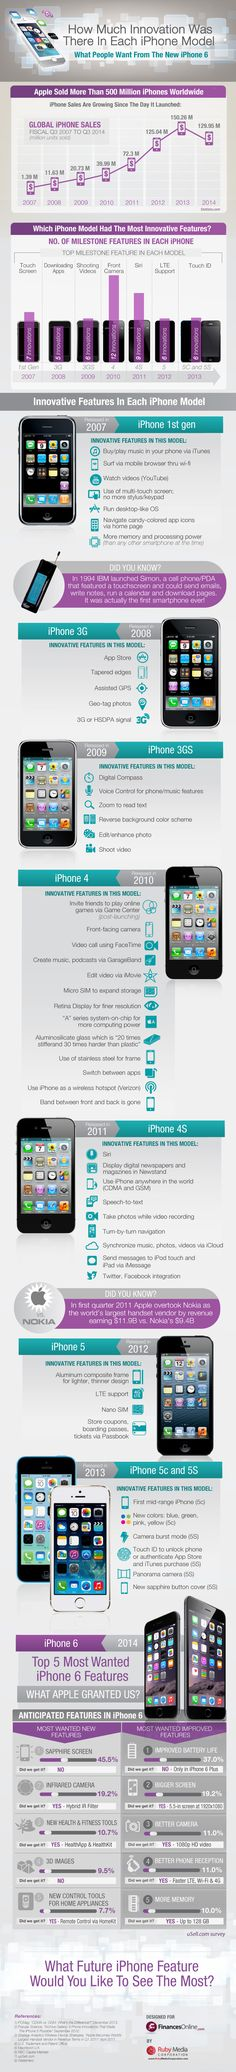 What People Want from the New iPhone 6 #infographic #iPhone #iPhone6 #Smartphone #MobileDevices